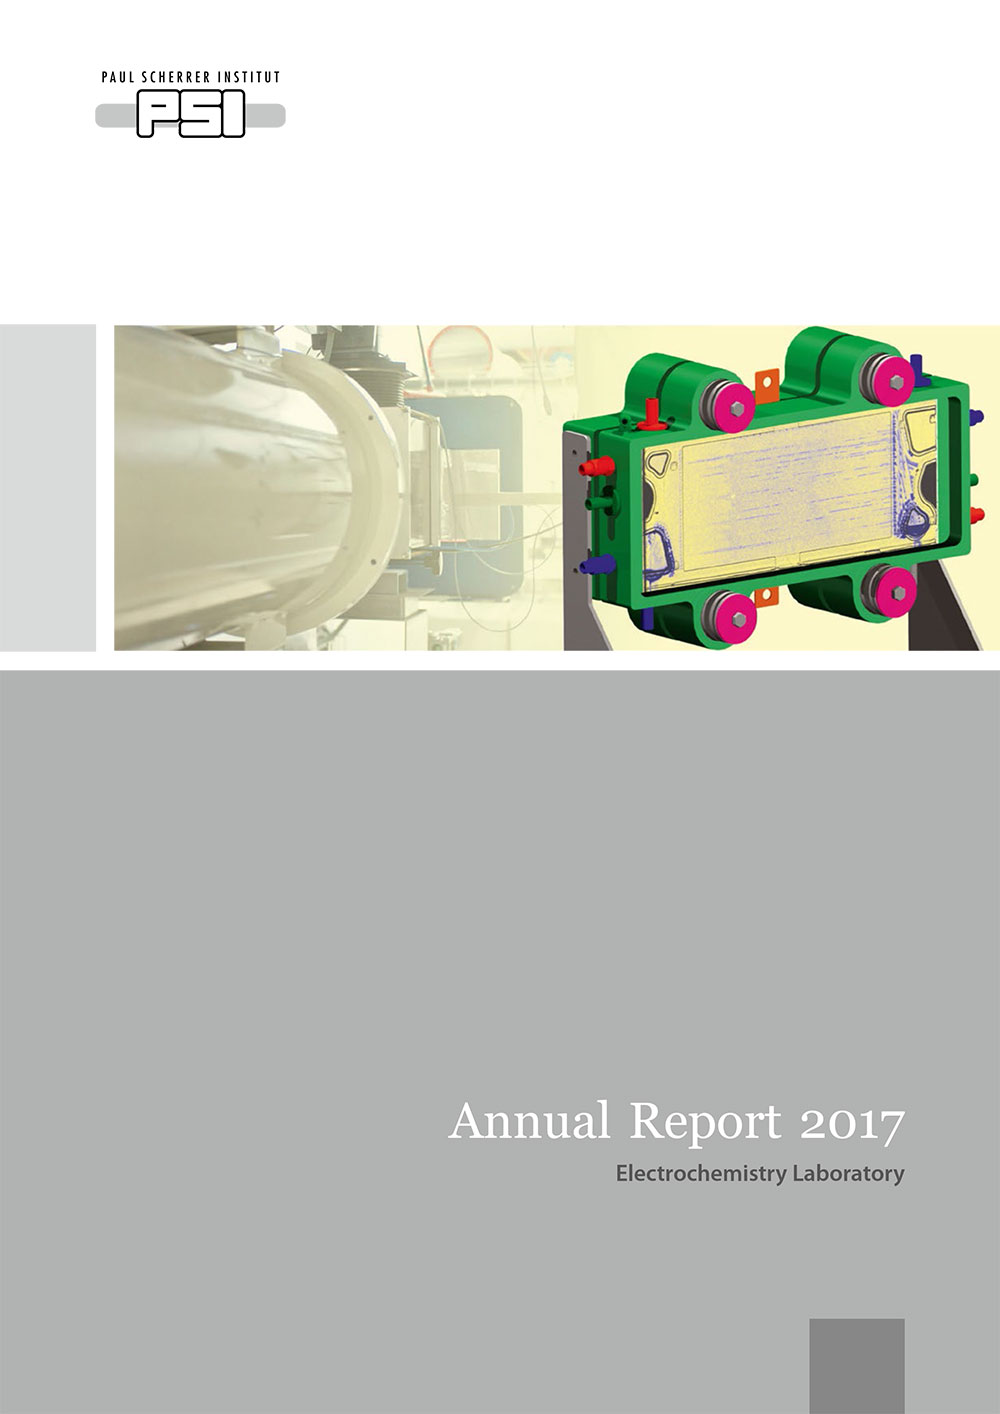 Annual Report 2017 ecl.jpg